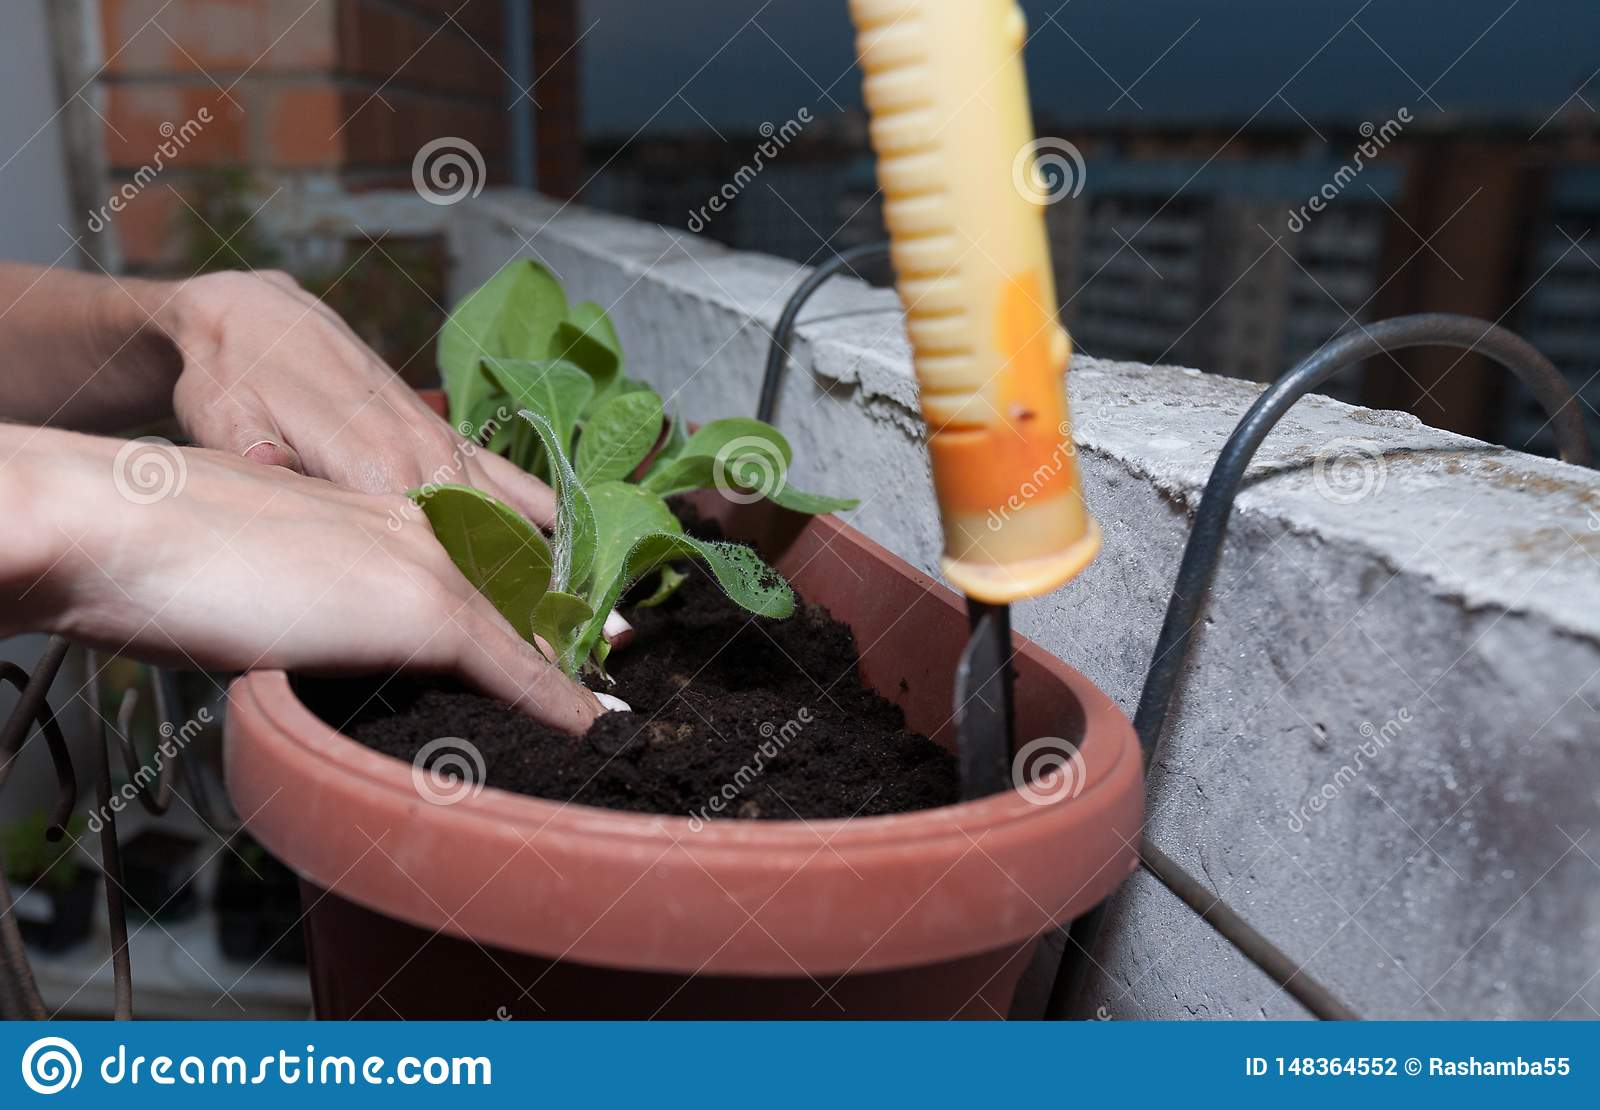 female hands plant flowers in the pot with earth on the balcony